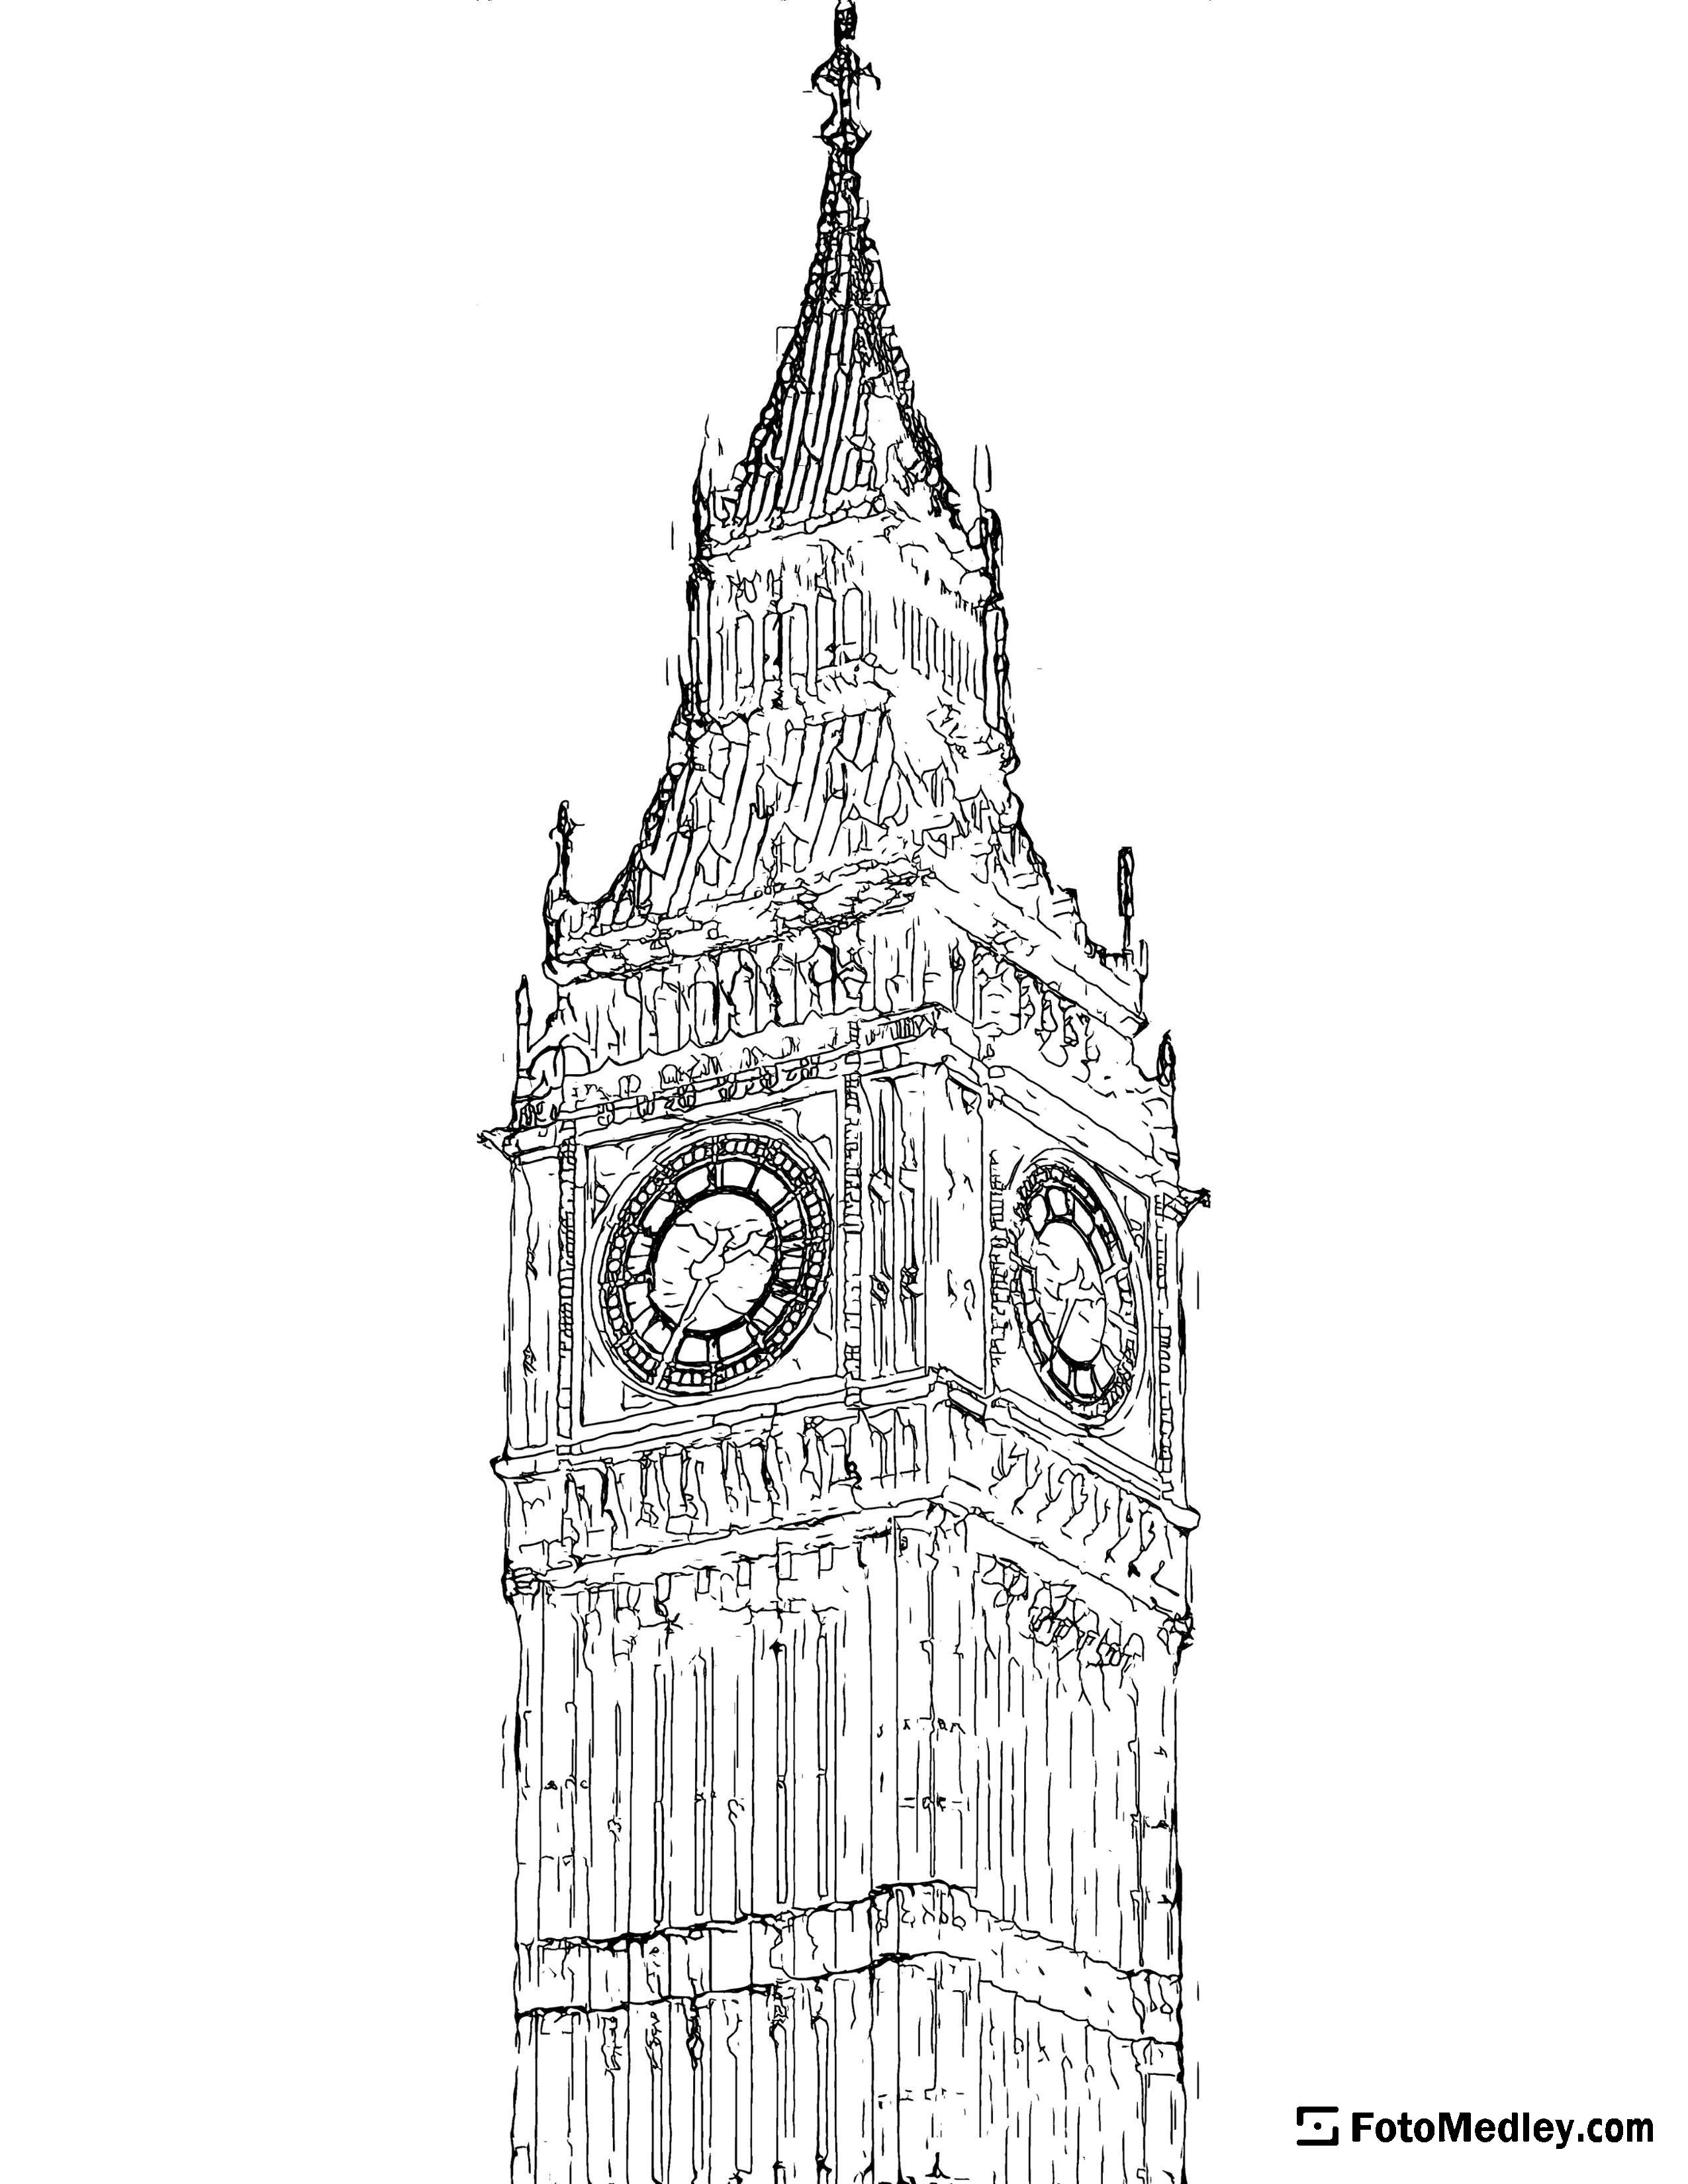 A detailed coloring page of a the Elizabeth Tower clock of the Palace of Westminster, containing the Big Ben bell.